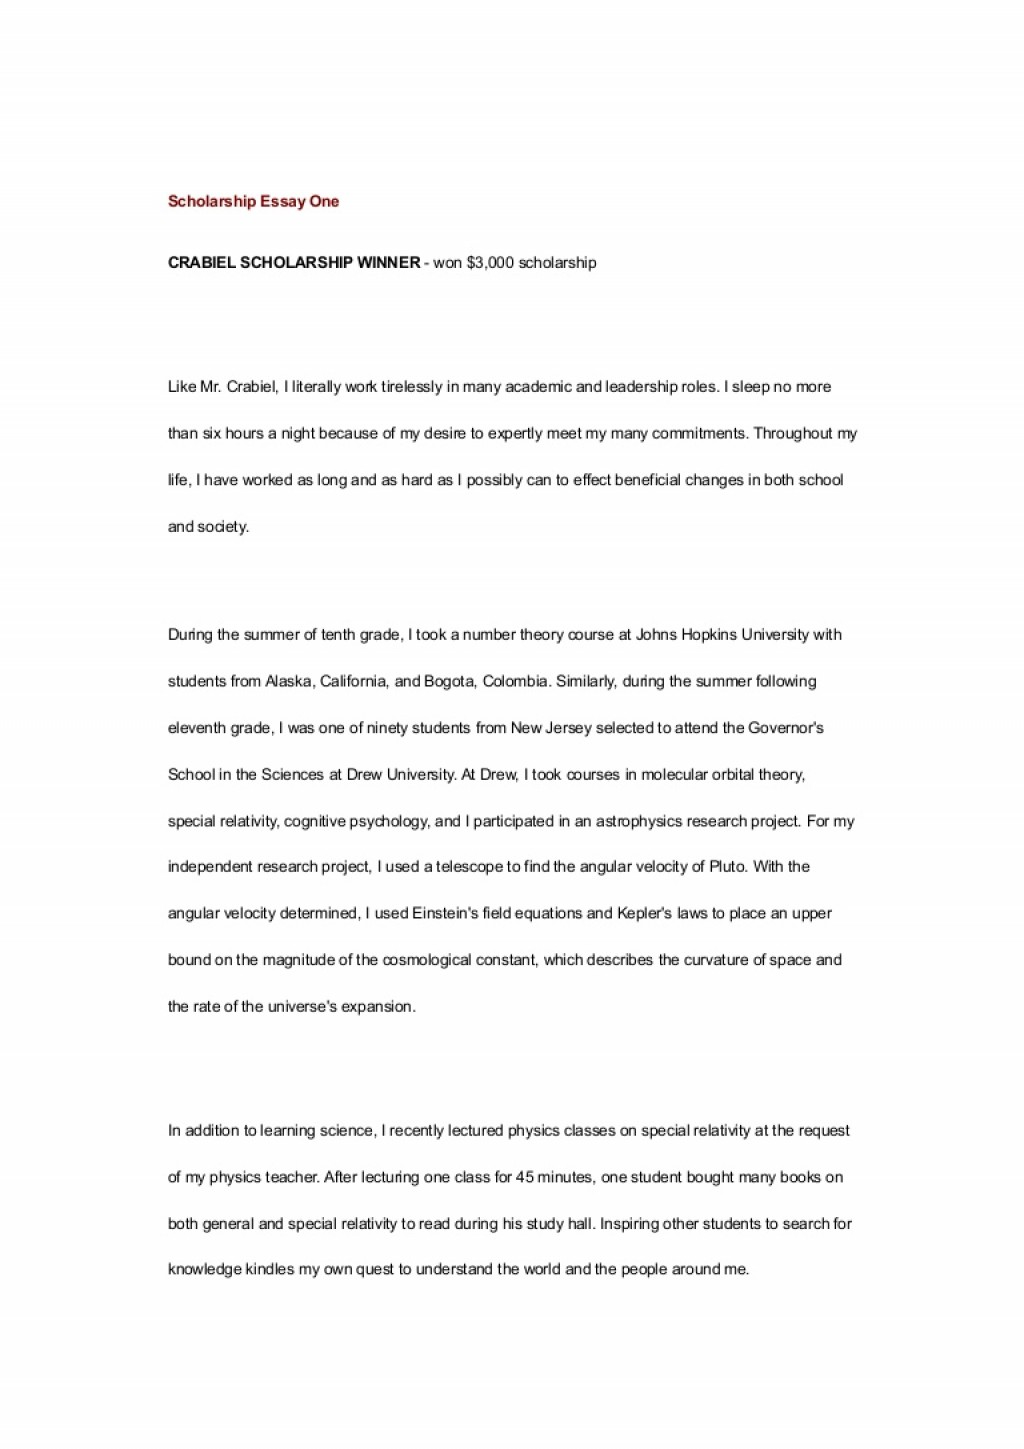 005 Scholarship Essay Examples Example Scholarshipessayone Phpapp01 Thumbnail Impressive About Career Goals Pdf Winning For Study Abroad Large